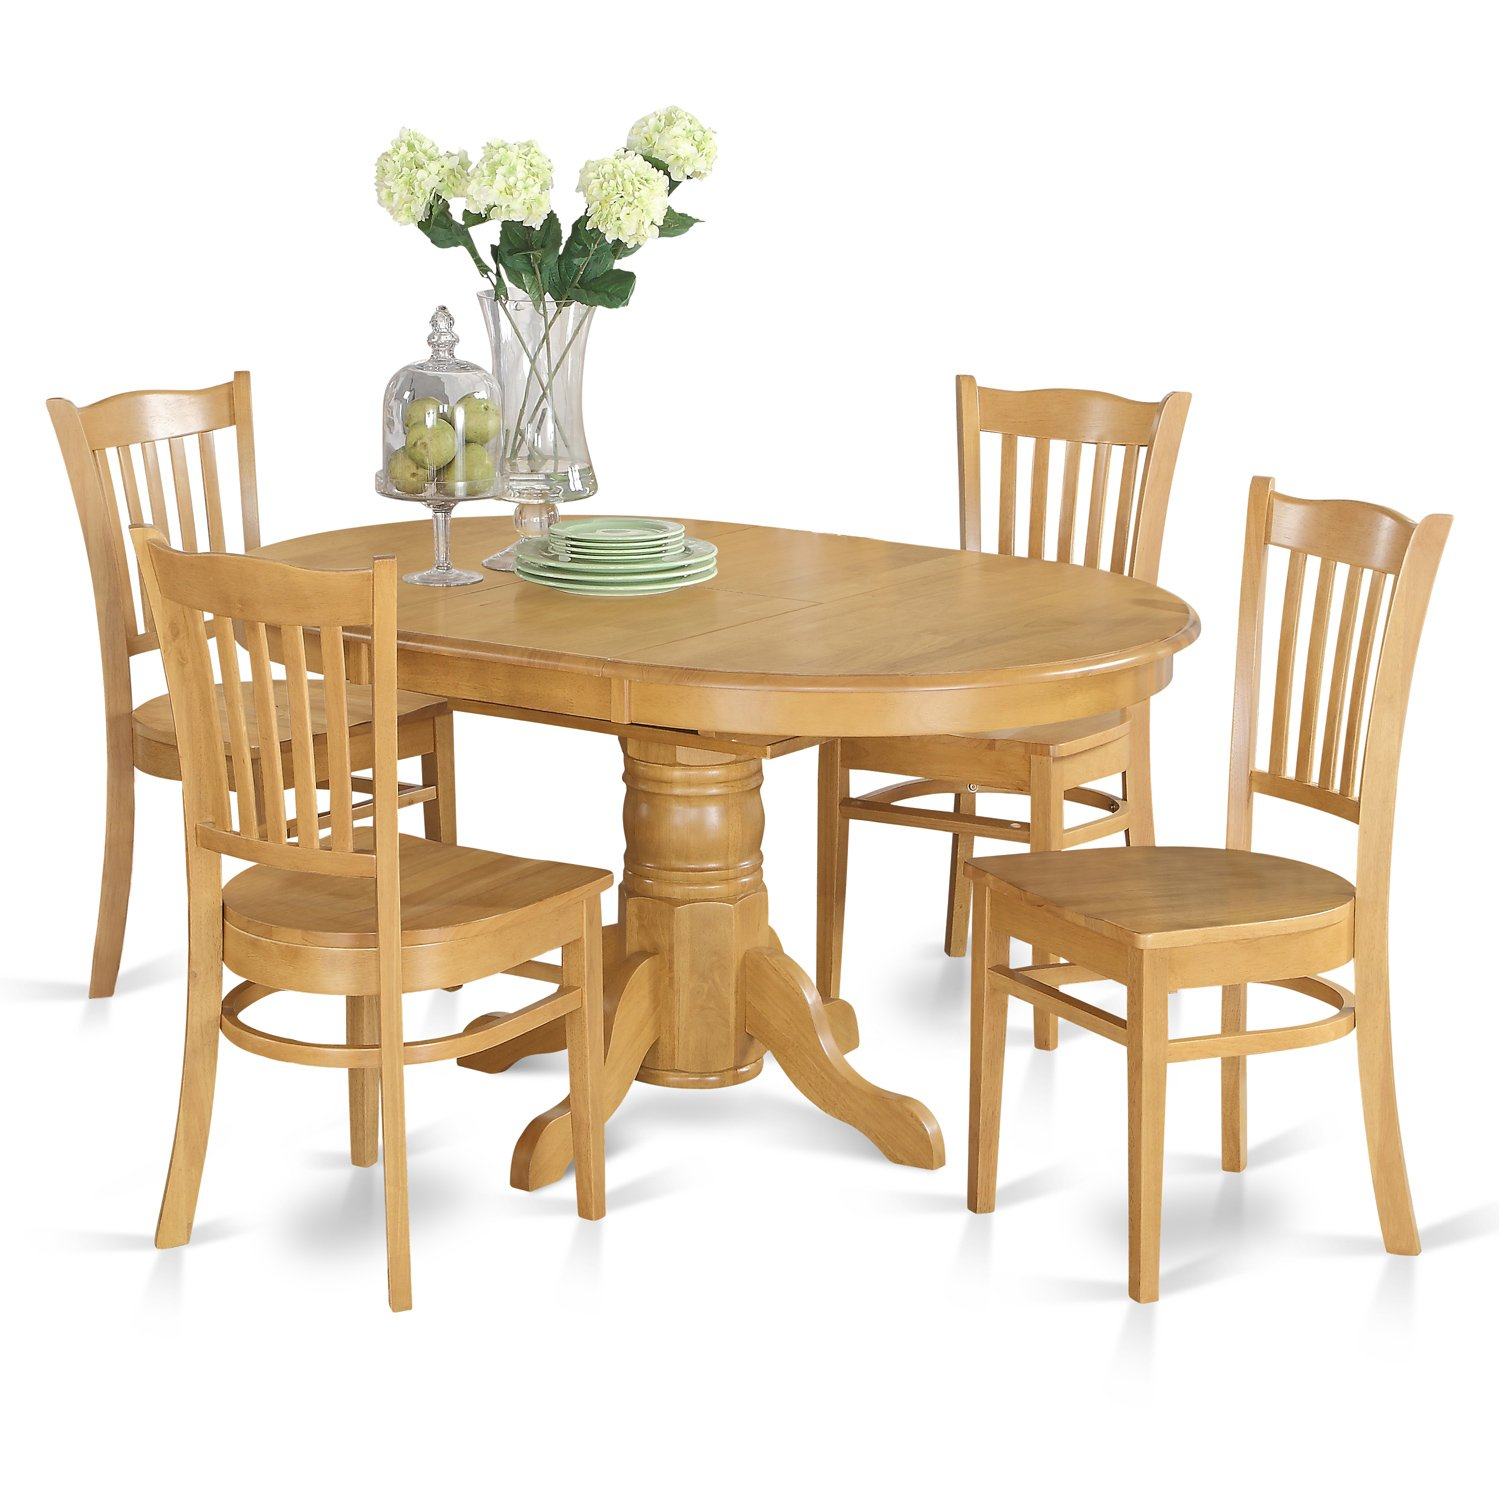 AVGR5-OAK-W 5 Pc Dining room set for 4- Table with Leaf and 4 Dining Chairs.